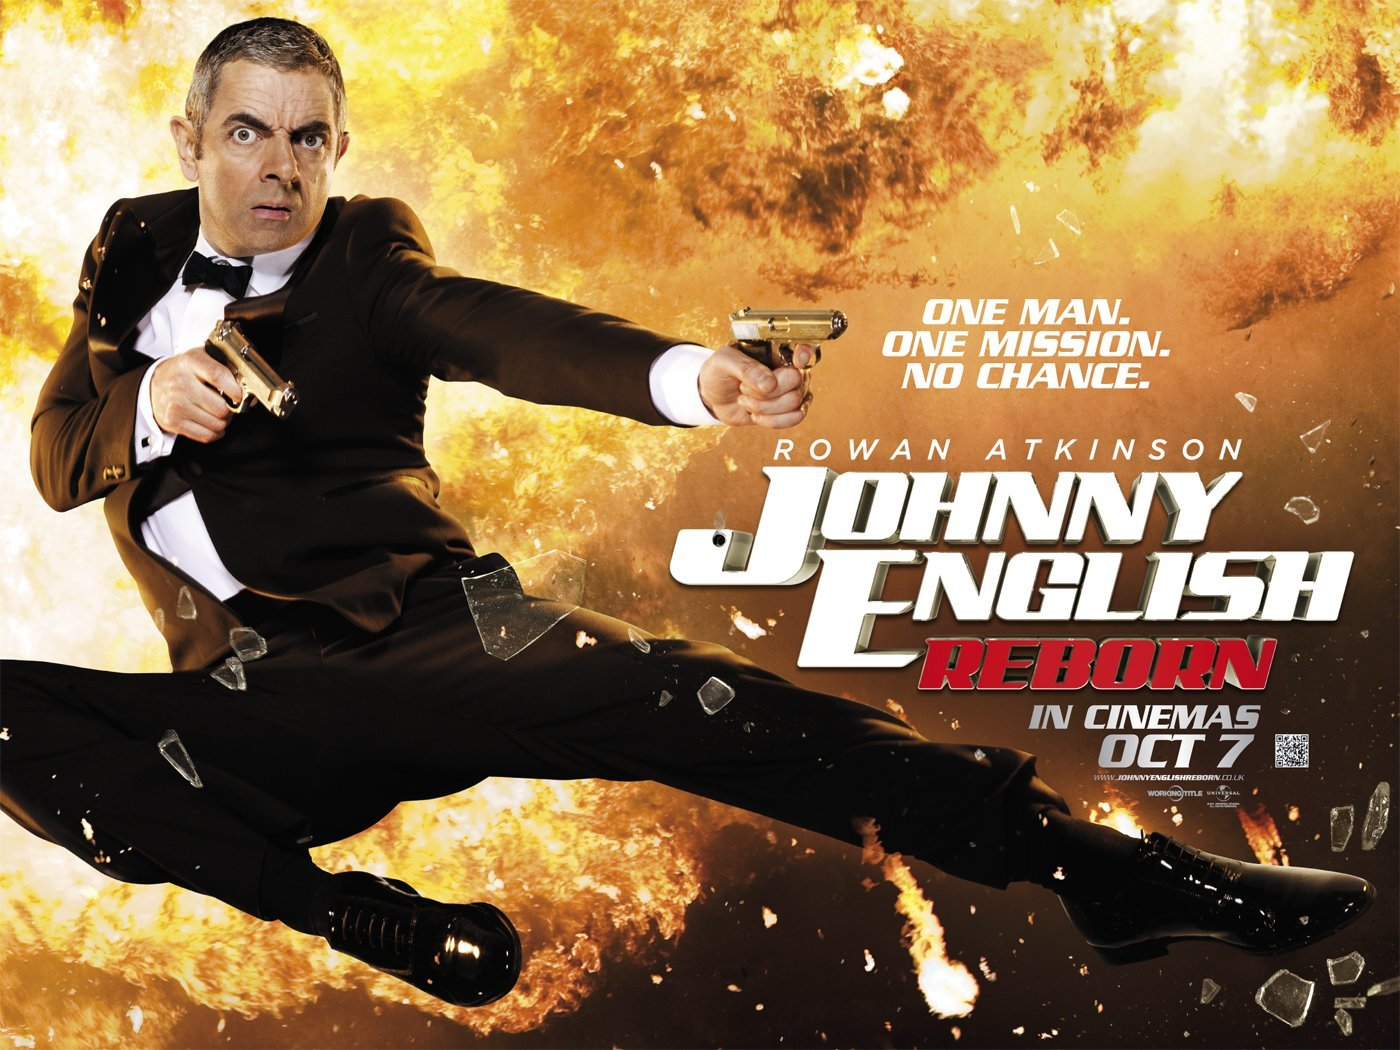 Johnny English Reborn♥ - Movie Posters! Wallpaper (26233329 ...